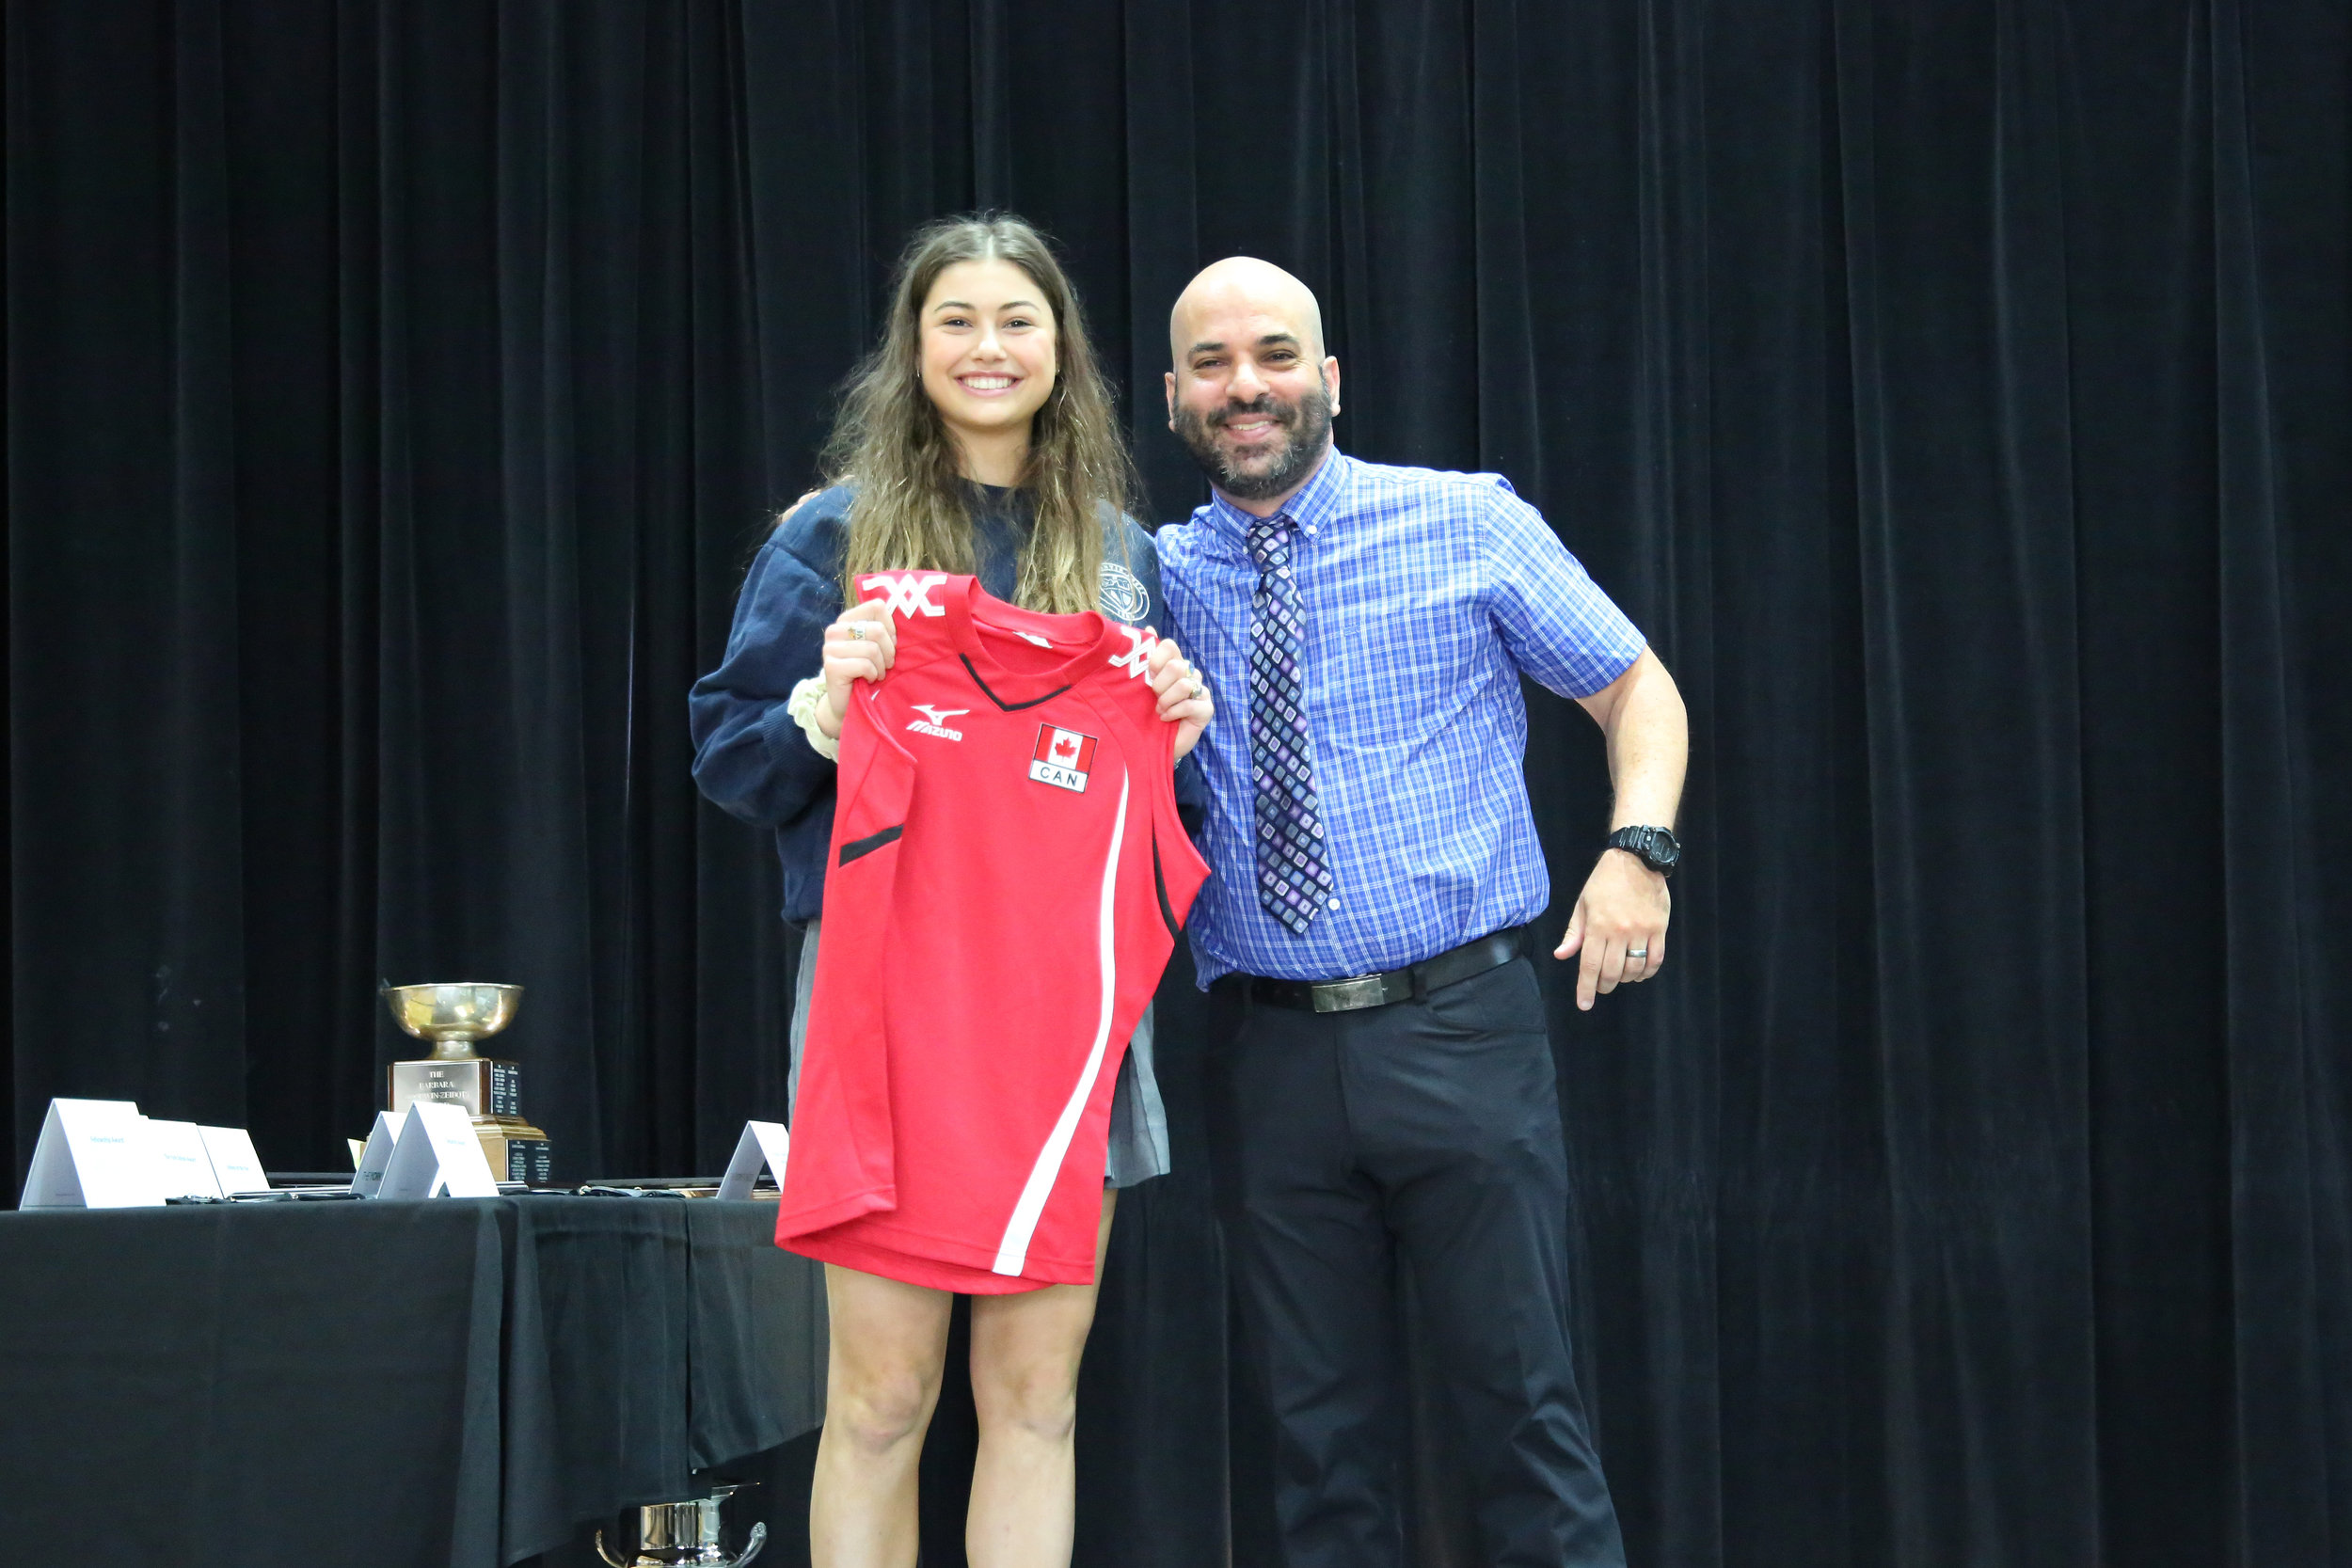 Overflowing with Gladiator Pride as student athlete Julia M earns her place on Team Canada's Female Youth National Volleyball Team. Congratulations Julia!